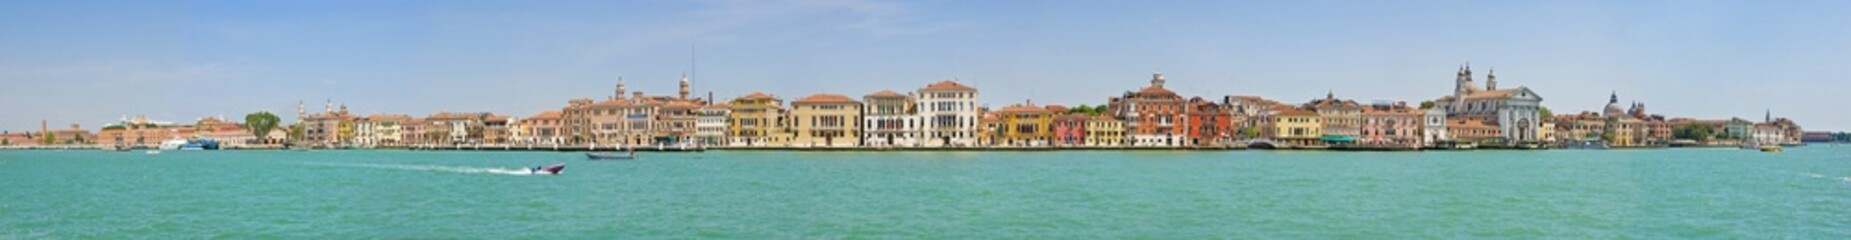 The panorama of Venetian Lagoon, Venice, Italy